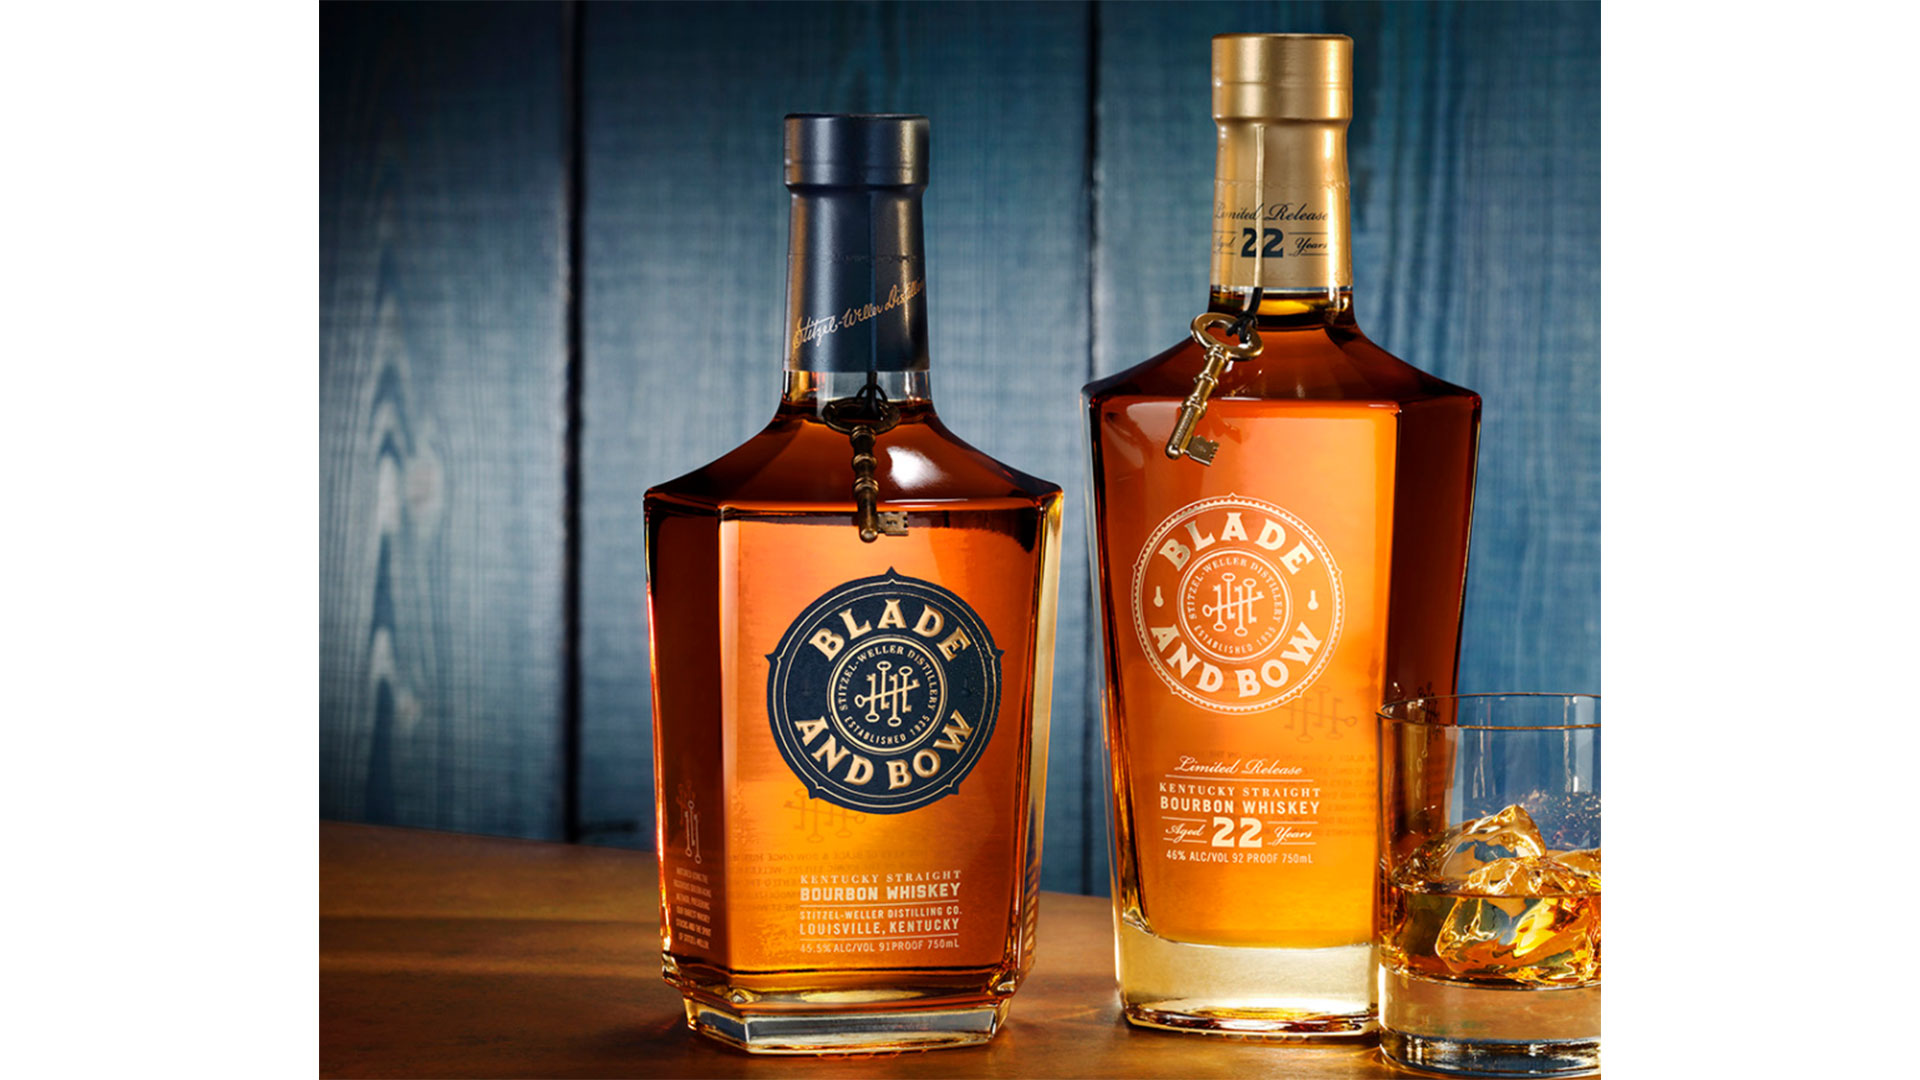 Best New Brand: Blade and Bow Kentucky Straight Bourbon Whiskey